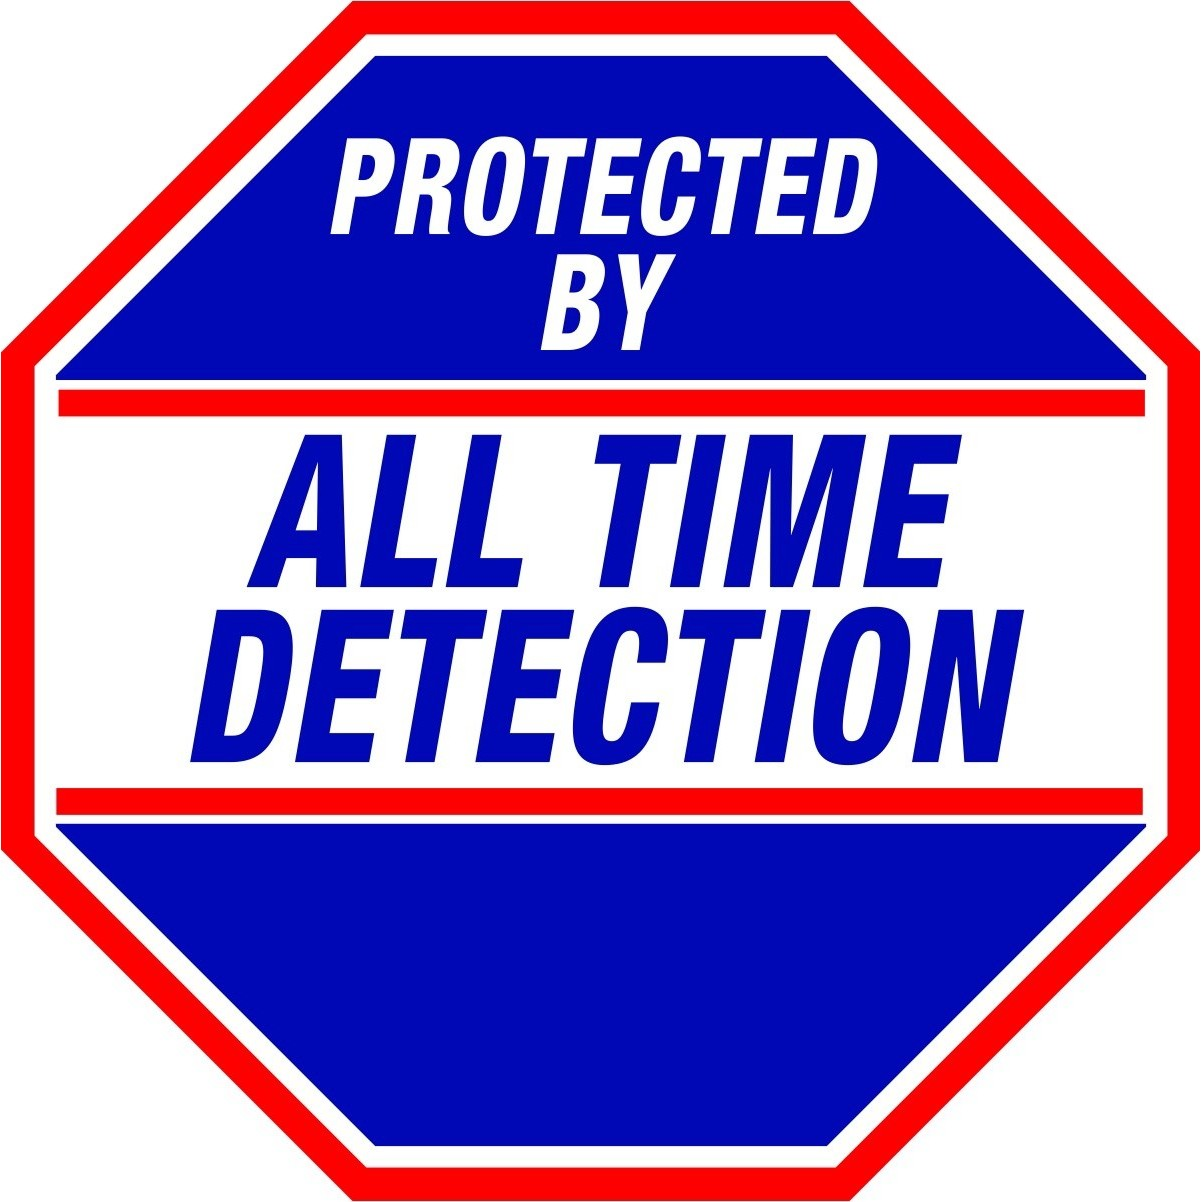 All Time Detection